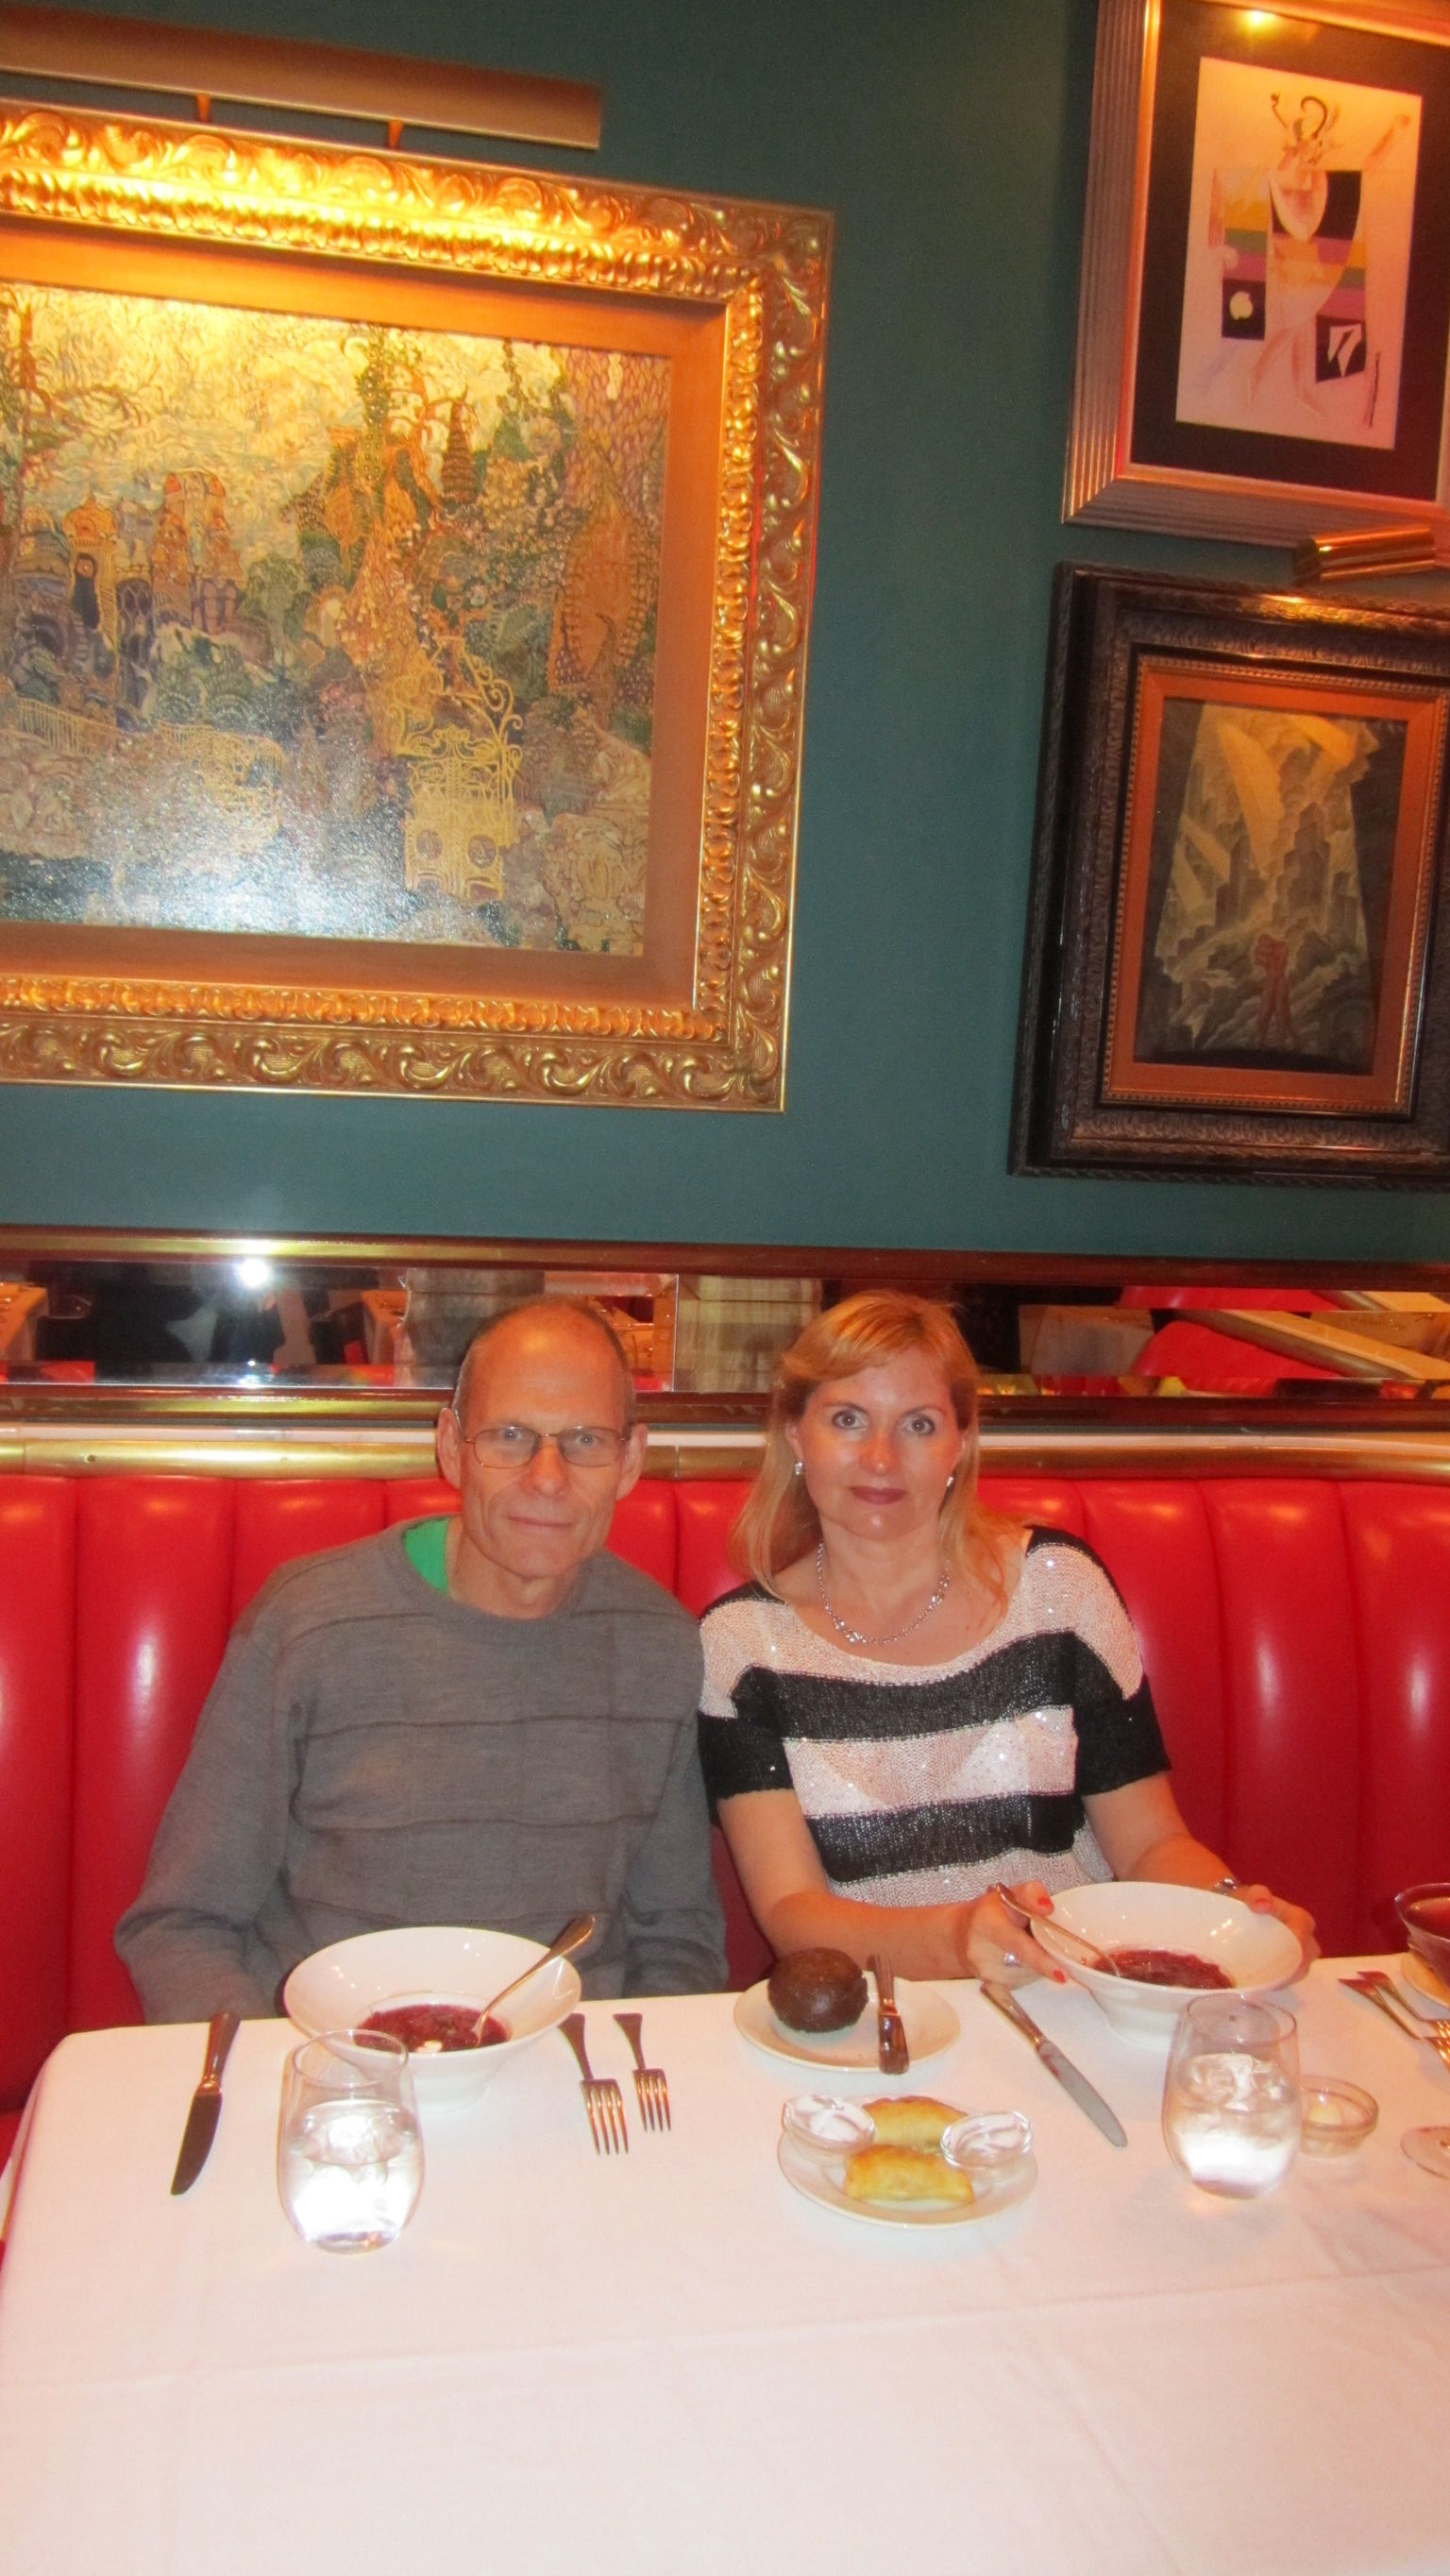 The Russian Tea Room Dining Experience Things to do in New York